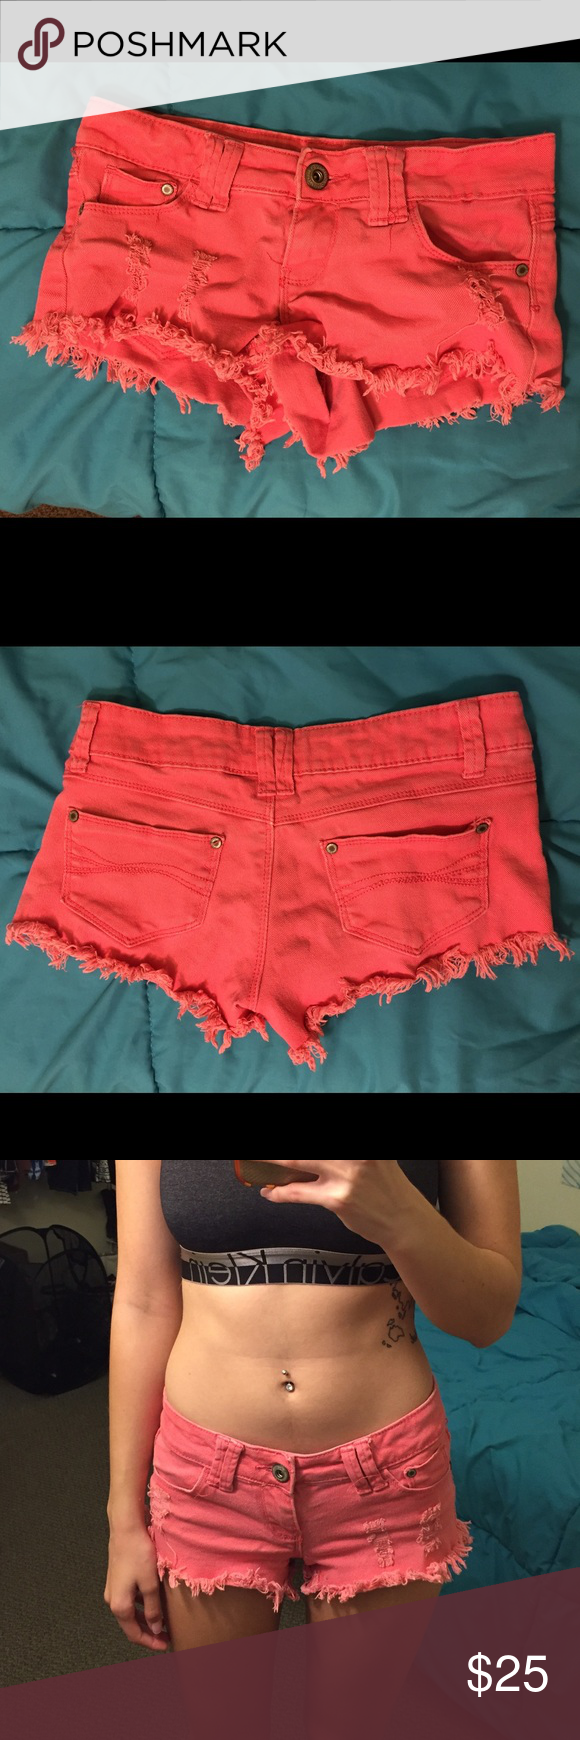 """Pink Ripped Denim Shorts Pink ripped shorts. Don't know where from, marked Roxy for exposure. Says size 0, but stretched enough to fit a 1 or 3 in the hips, but not so much in the butt, unless you don't mind less than full coverage (pulled down for pictures). Excellent used condition. Bundle 2 or more things for 10% off, and feel free to make an offer! If you want to know my measurements, check my """"Meet Your Posher"""" listing! If you have any other questions, feel free to ask!❤ Roxy Jeans"""